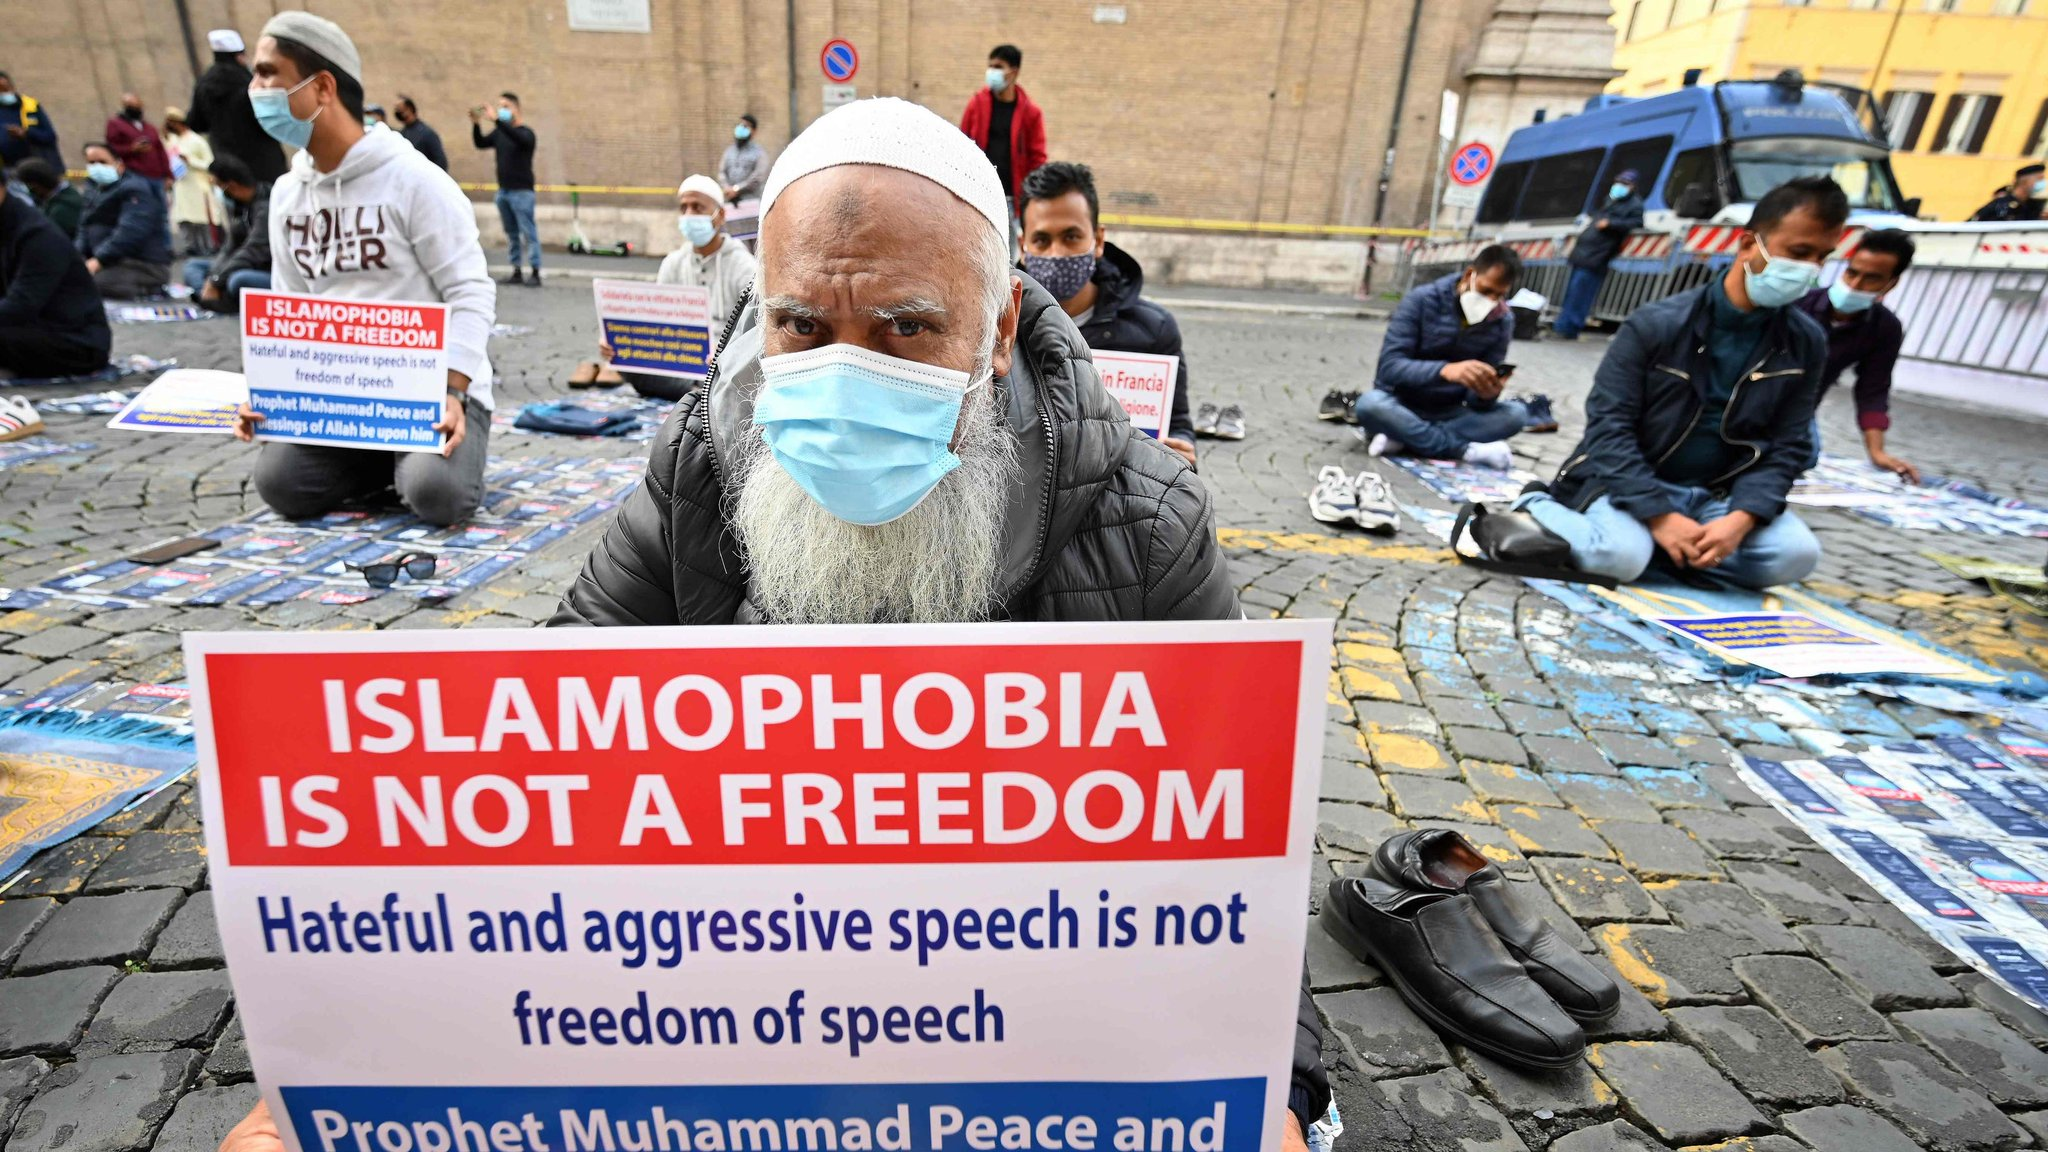 Terror attacks in France over Mohammad cartoons spark debate on secularism, Islamophobia Photo